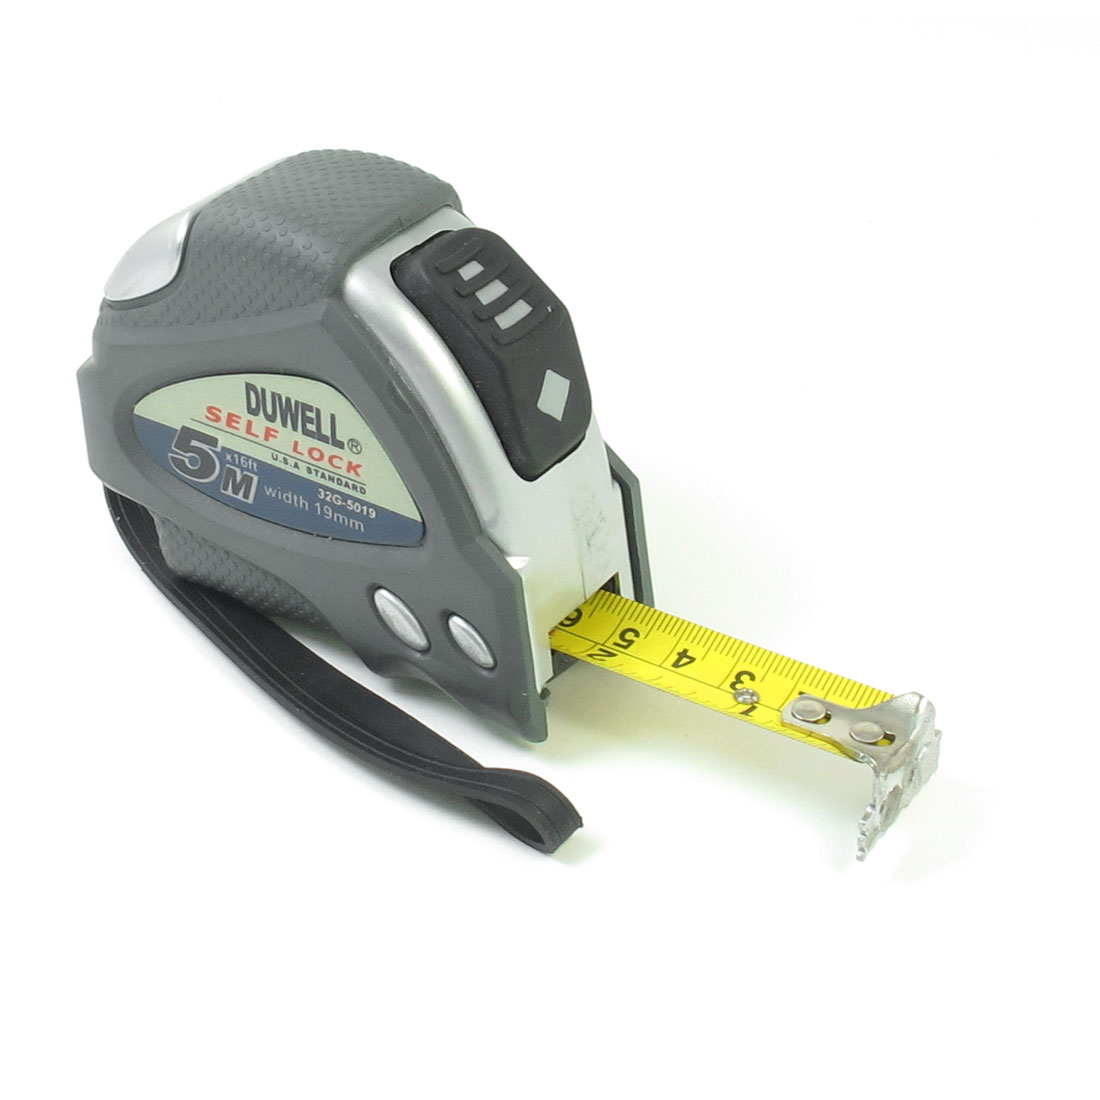 Retractable-Ruler-Wide-Blade-16Ft-Tape-Measuring-Range-Gray-Silvery-Tone-w-Strap